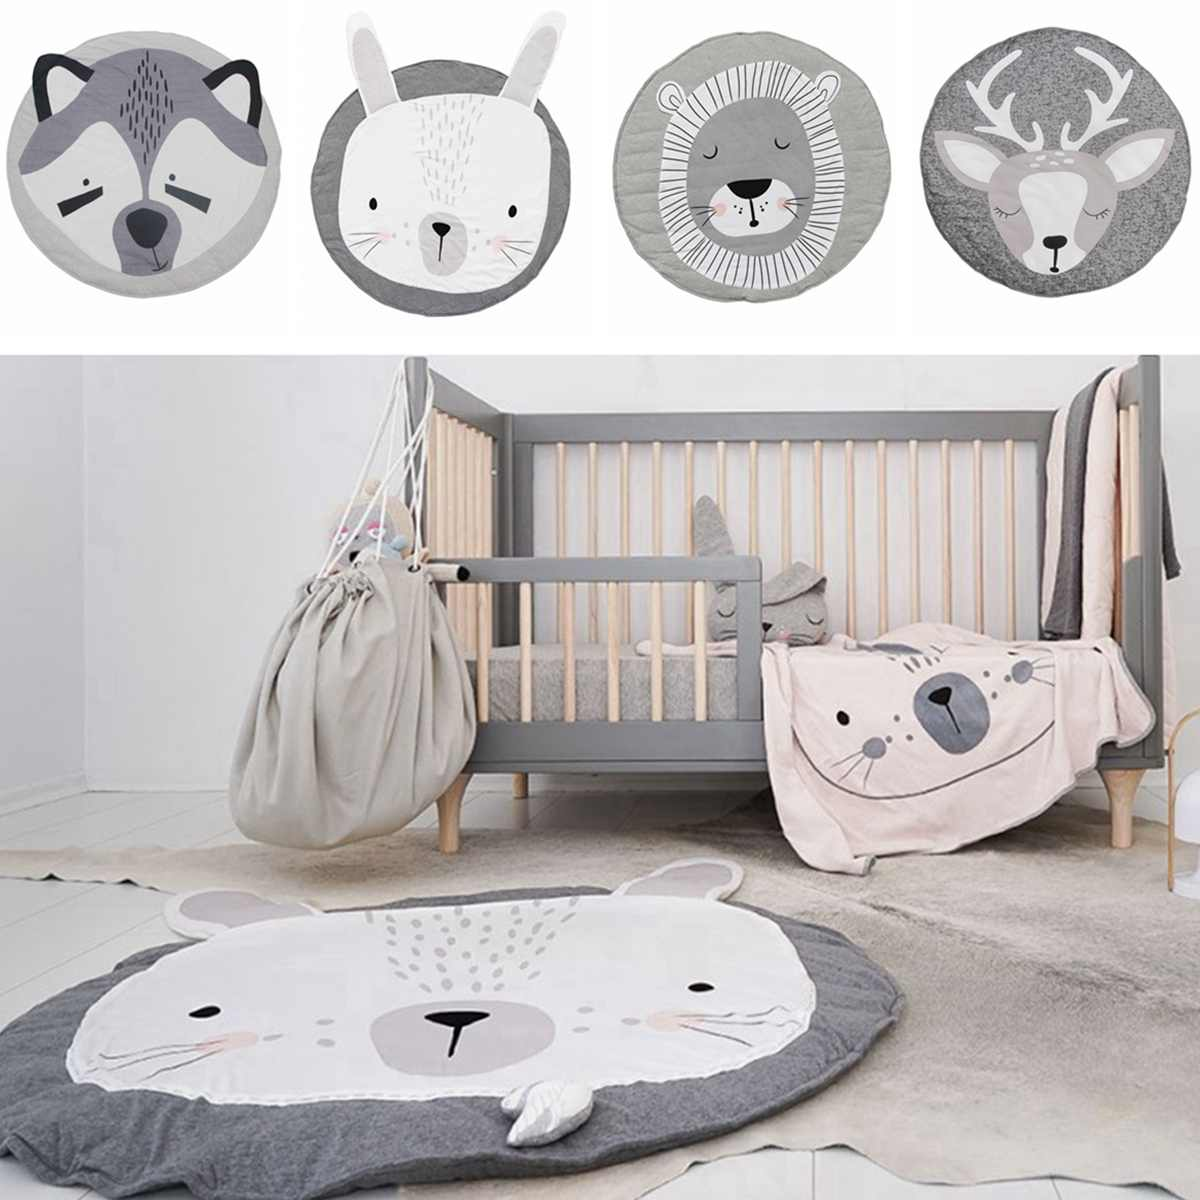 Baby Kids Soft Cotton Round Animal Game Gym Activity Play Mat Crawling Blanket Baby Infant Room Decoration Floor Rug Carpet